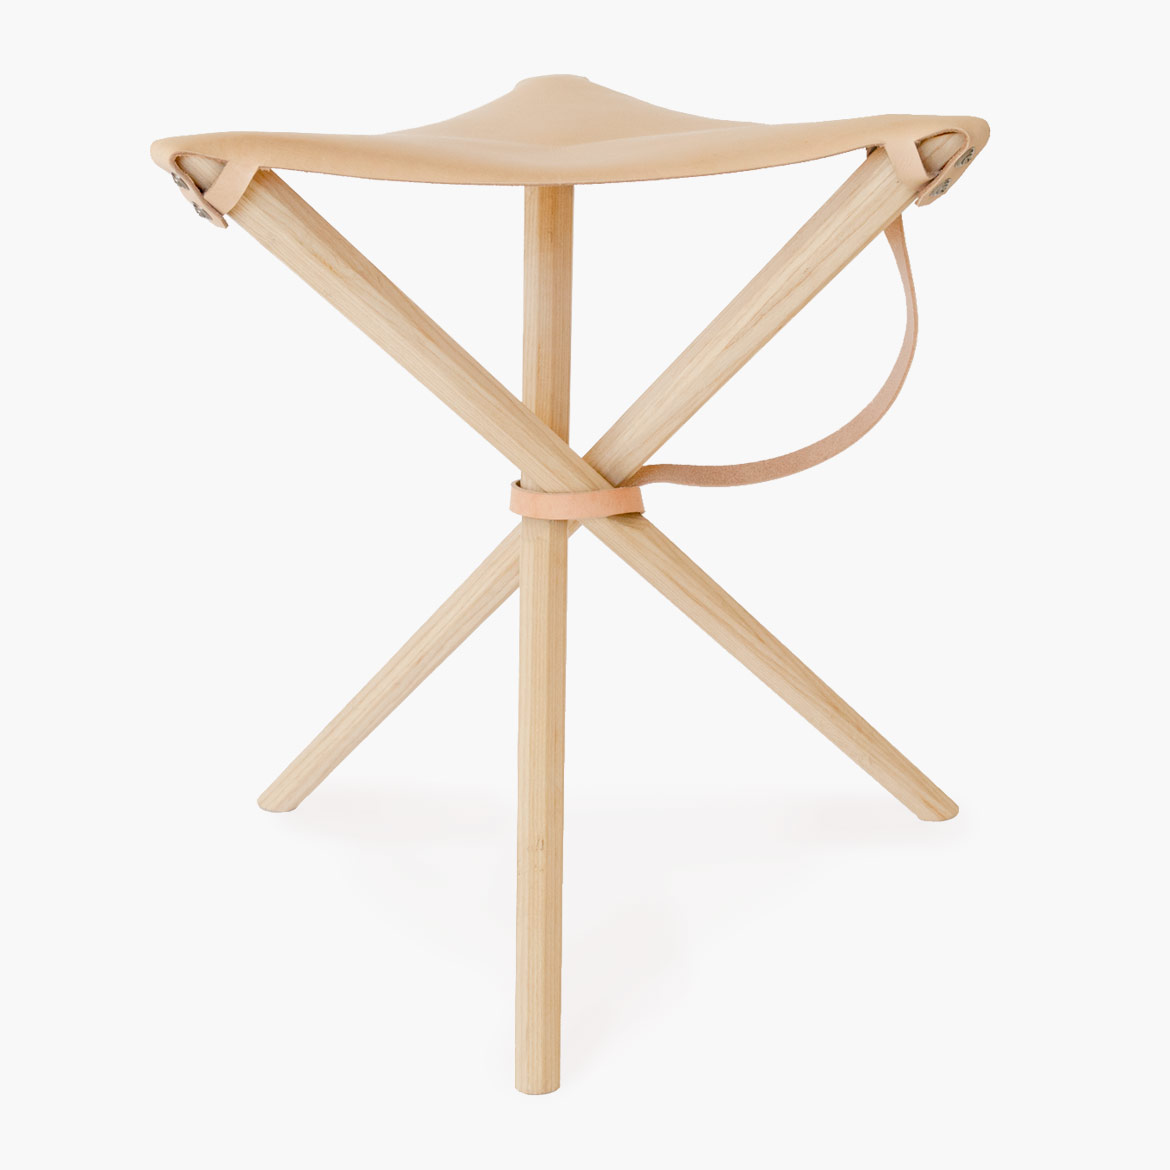 Coyote Stool in Veg Tan Leather